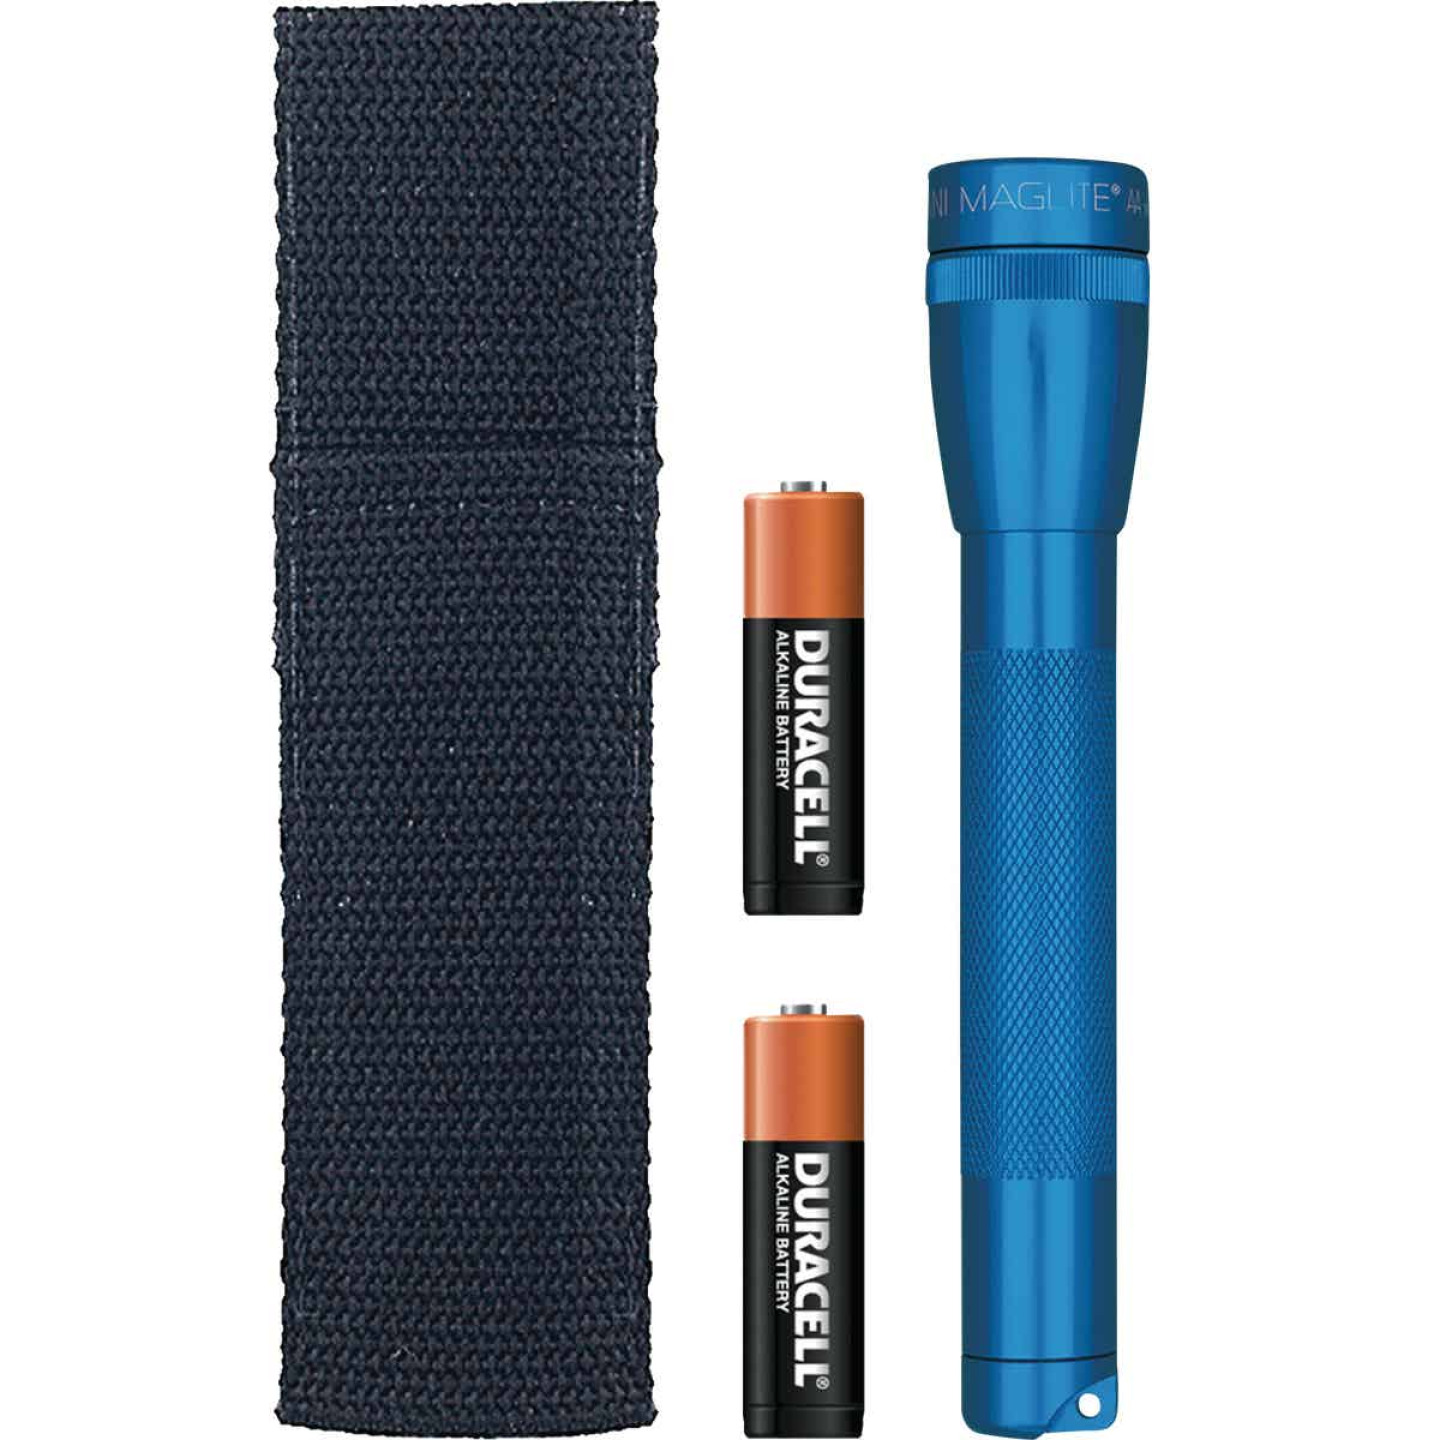 Maglite 14 Lm. Xenon 2AA Flashlight, Blue Image 1